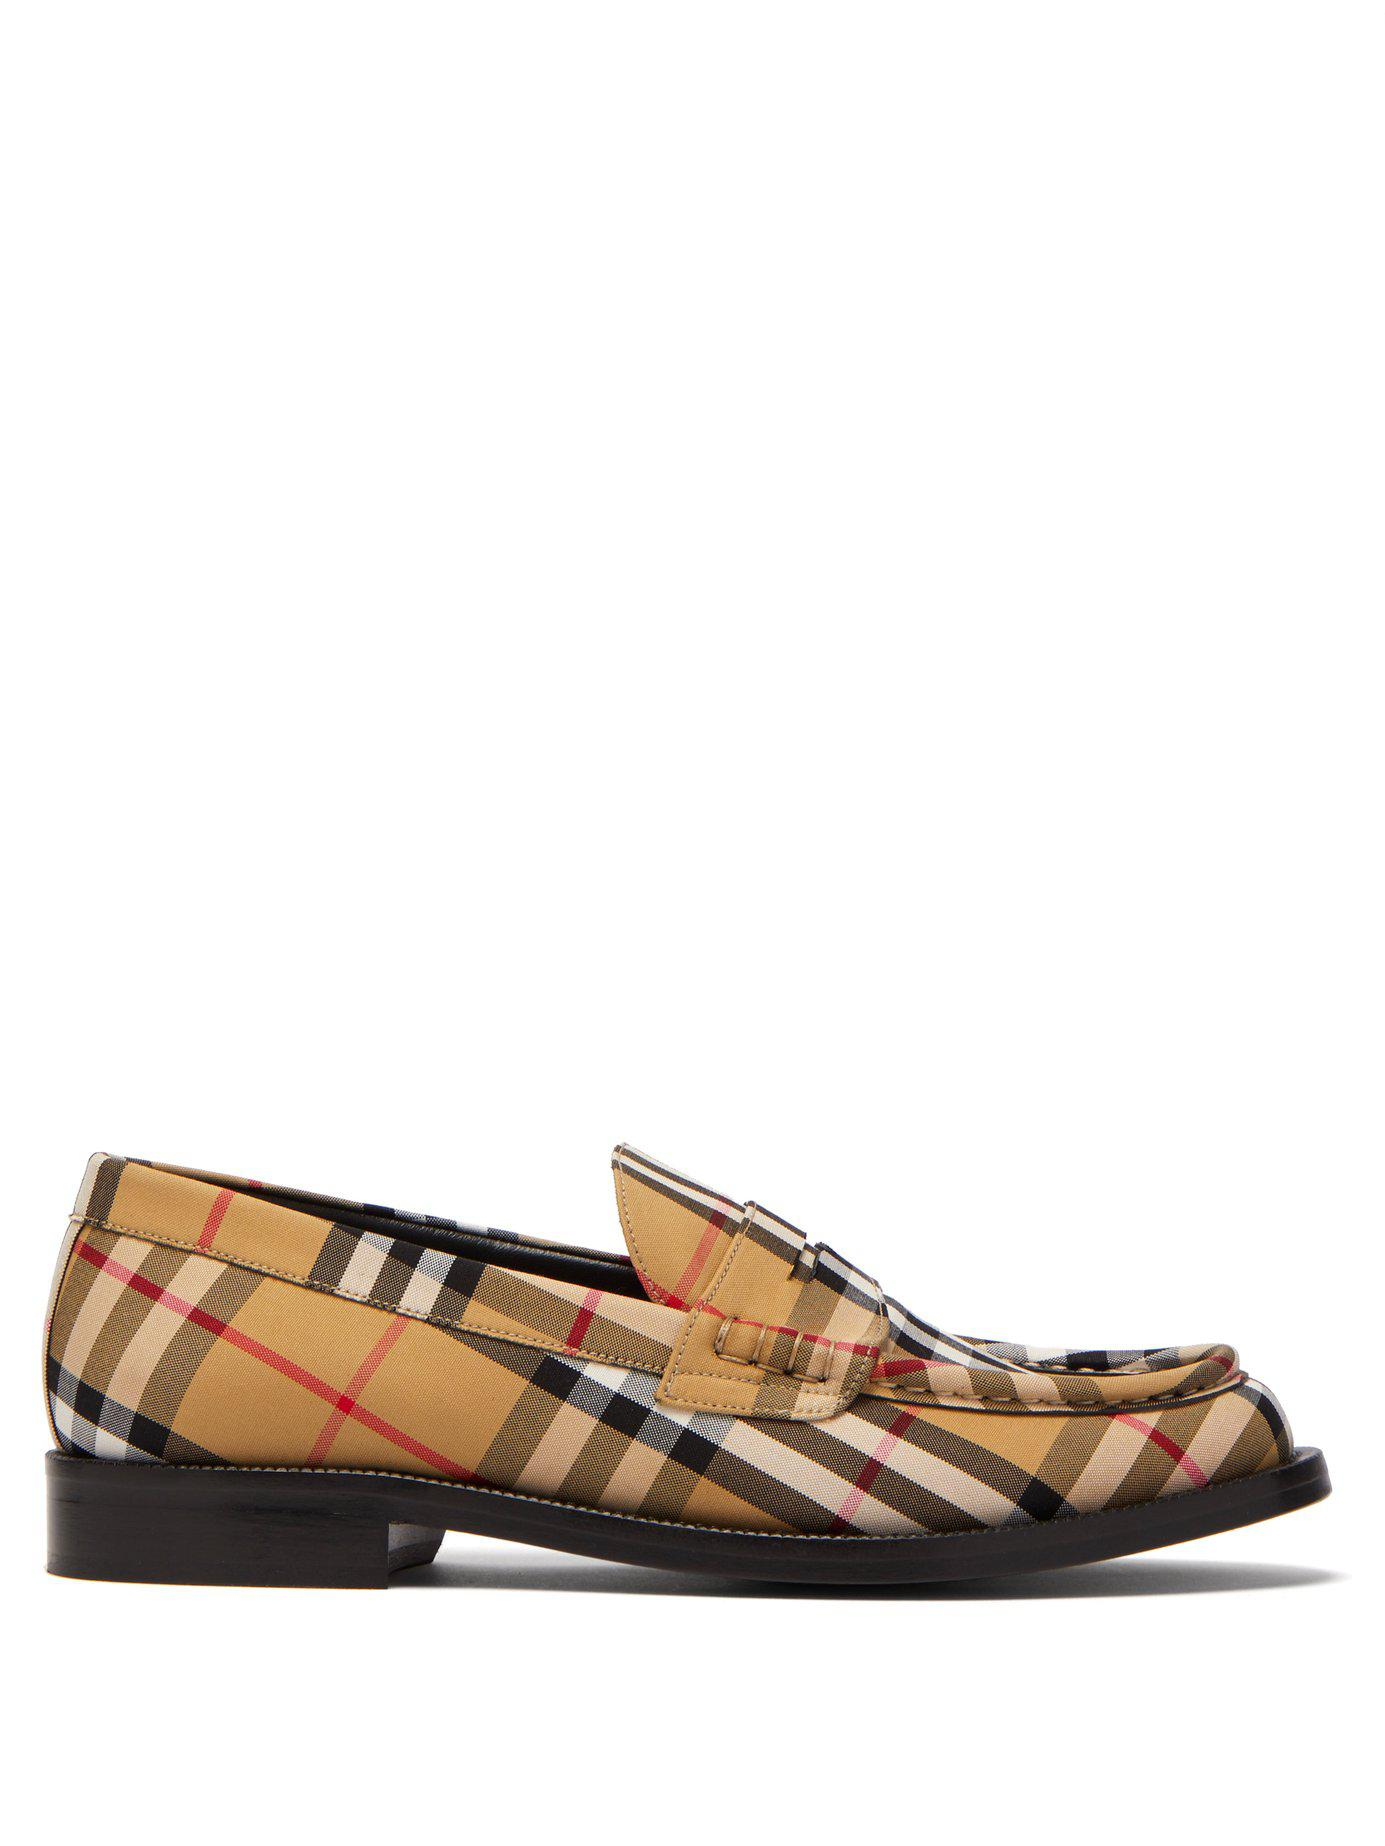 545fae693d5 Lyst - Burberry Bedmont Vintage-check Loafers